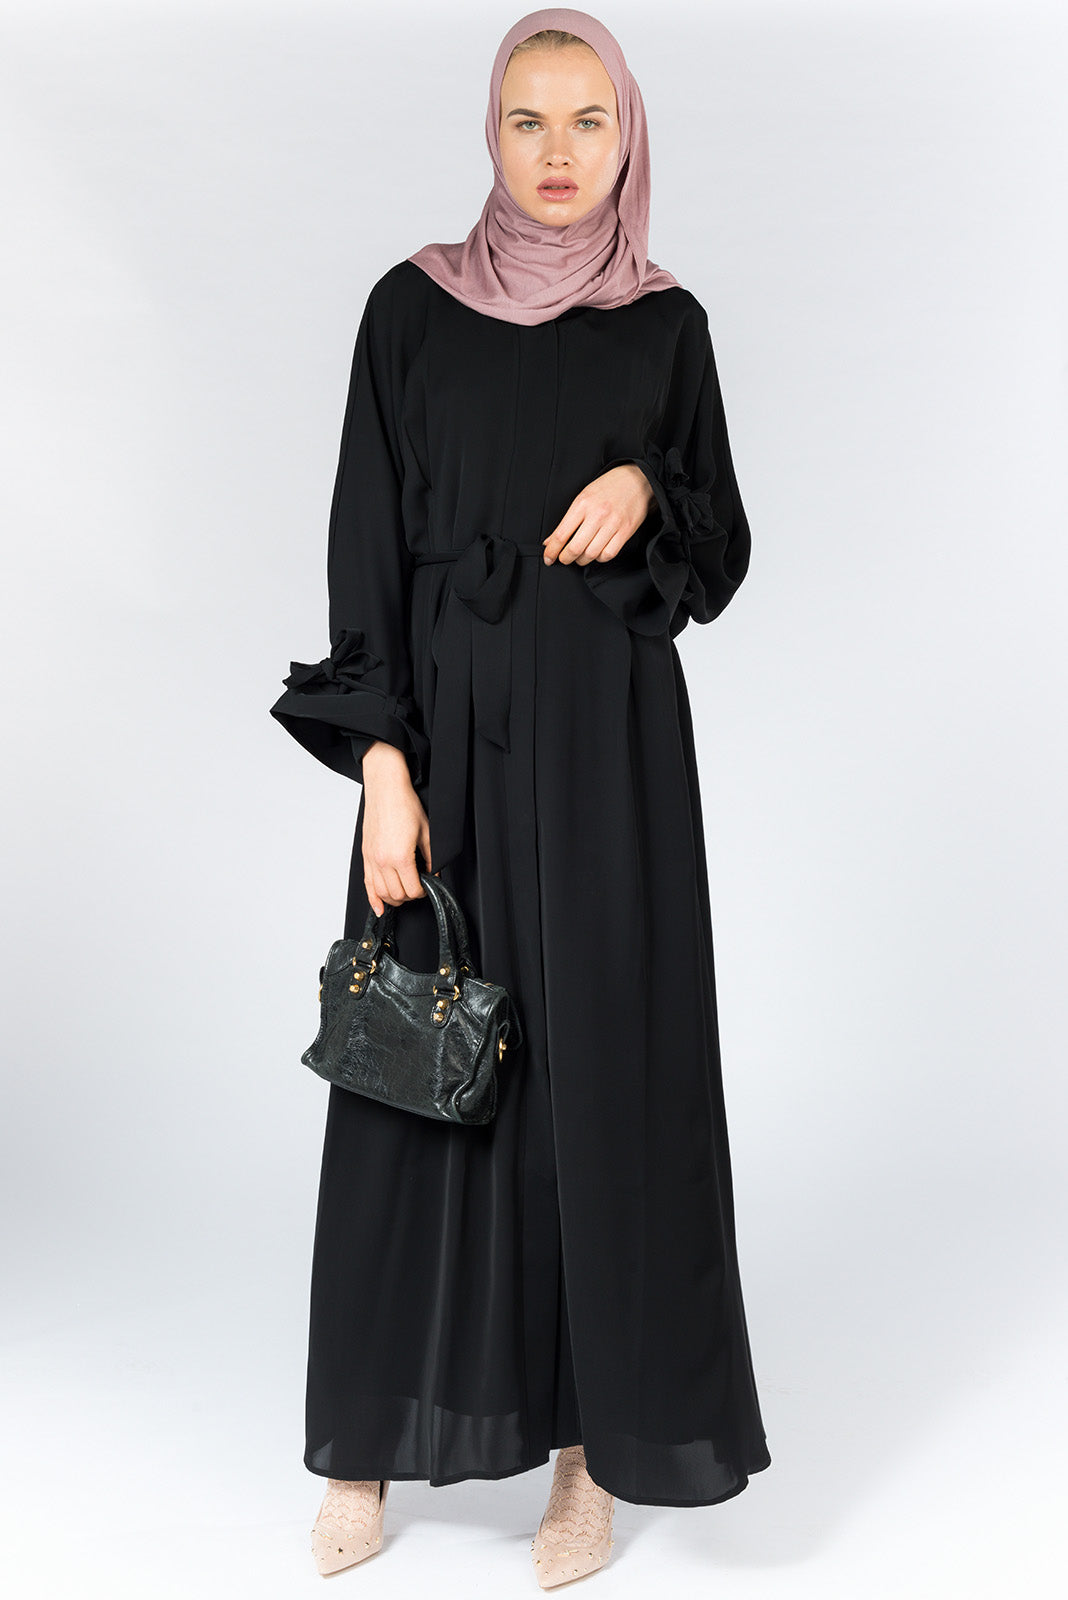 FERADJE London Burberry abaya black UK